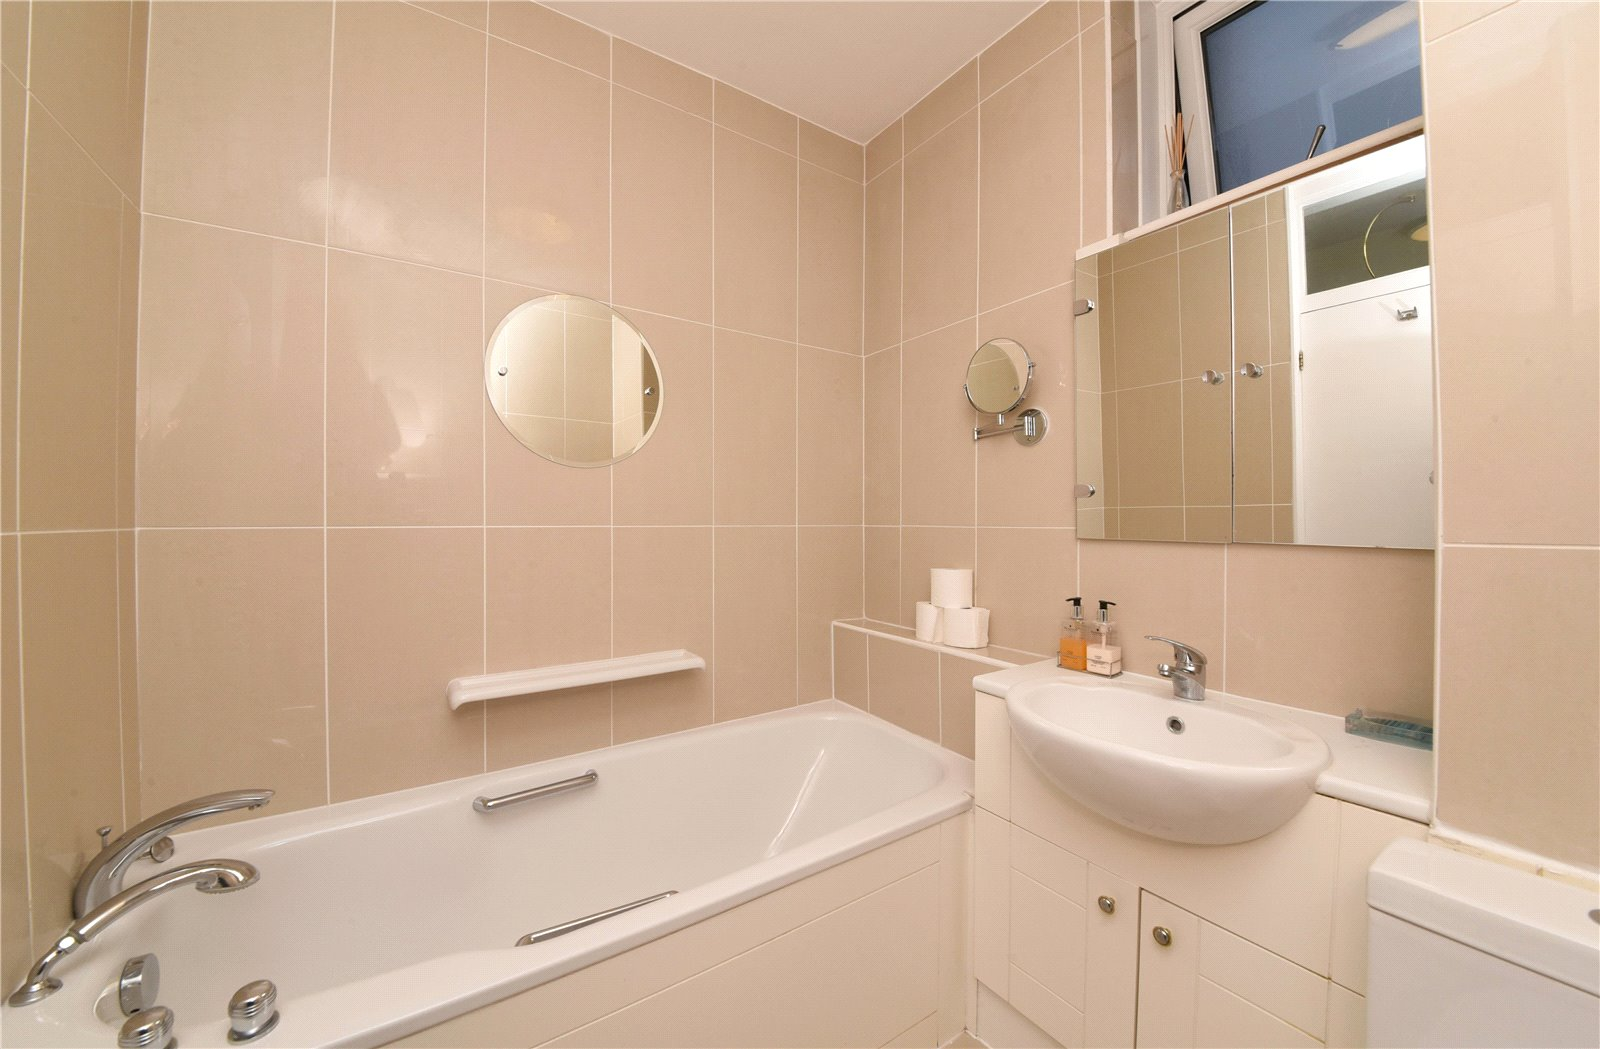 2 bed apartment for sale in Hendon, NW4 1RB  - Property Image 4